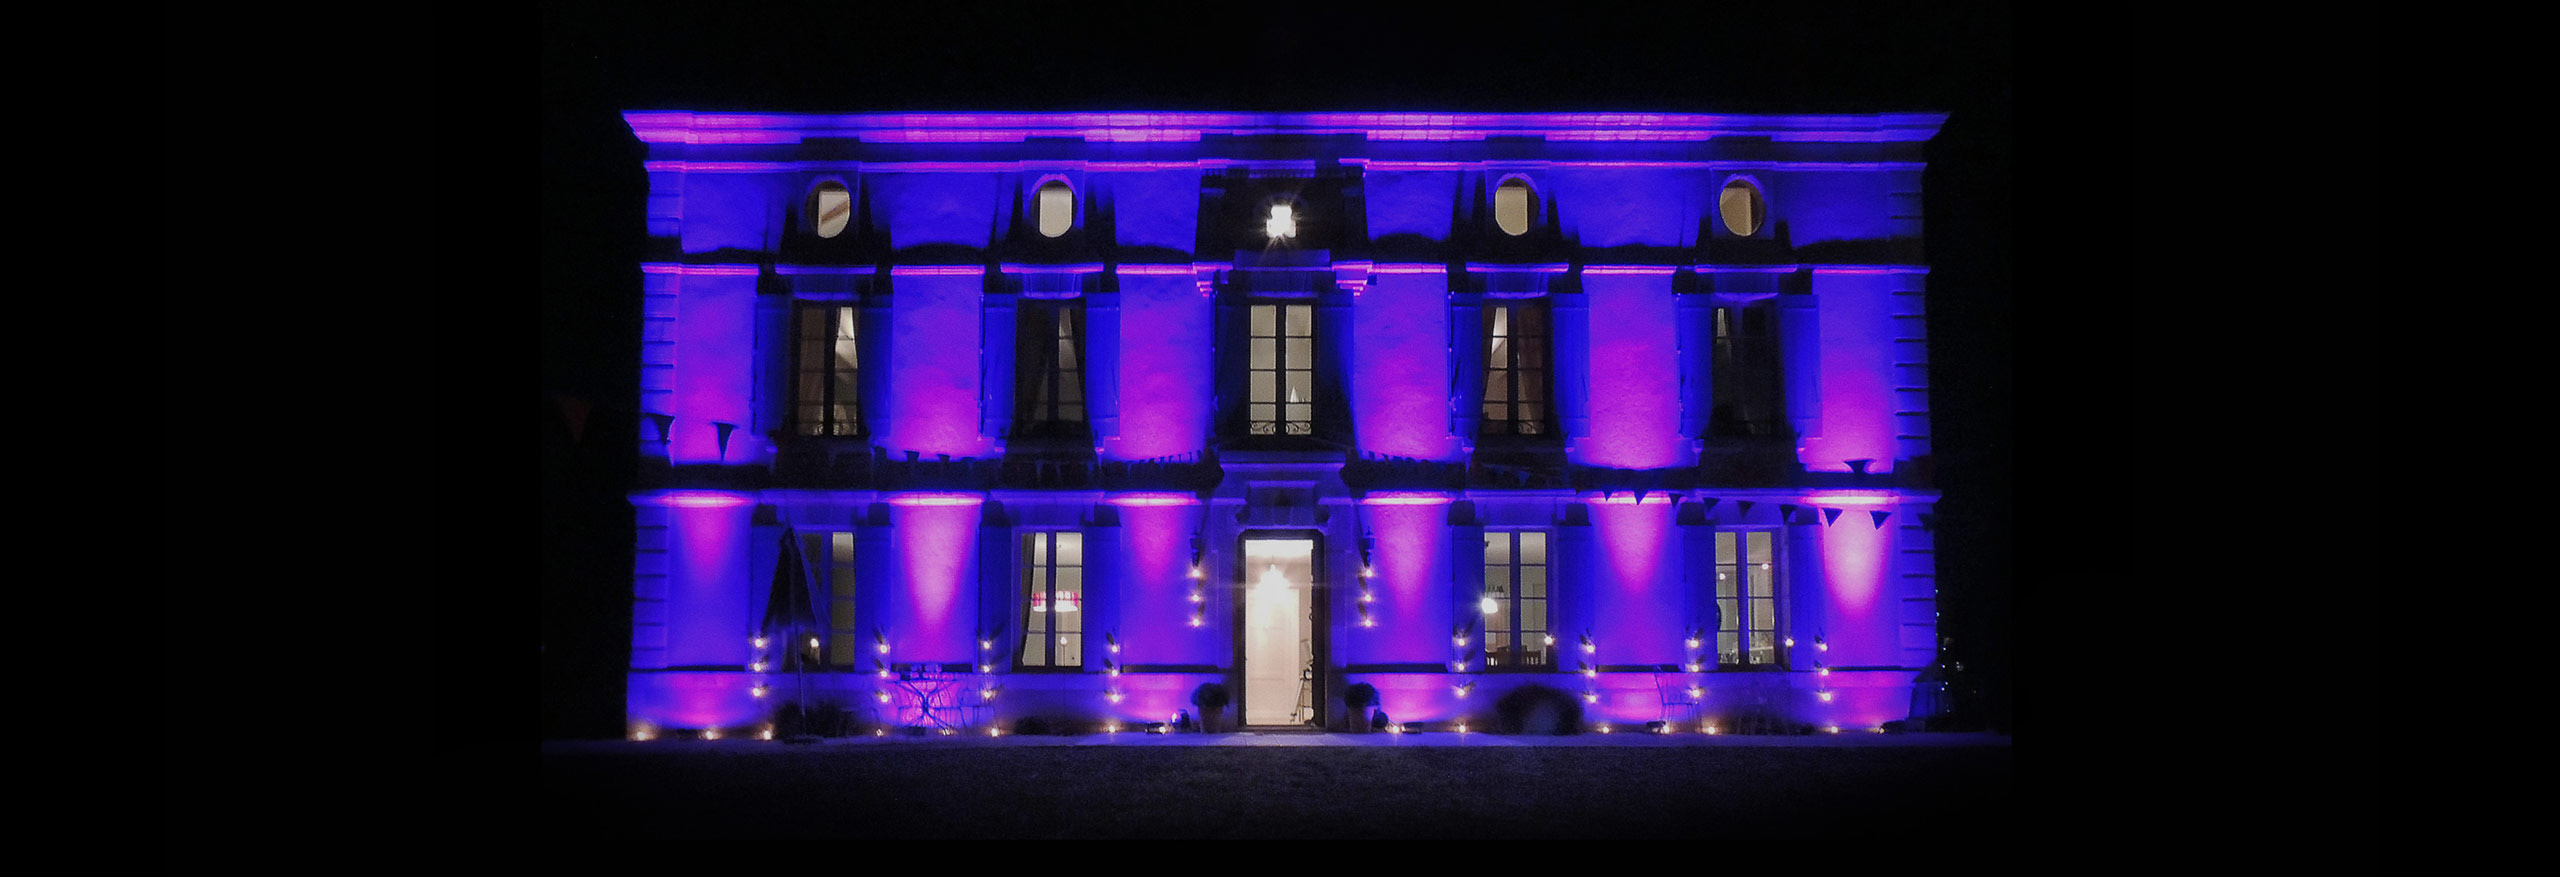 House_at_night_Joli_Fleuron_France